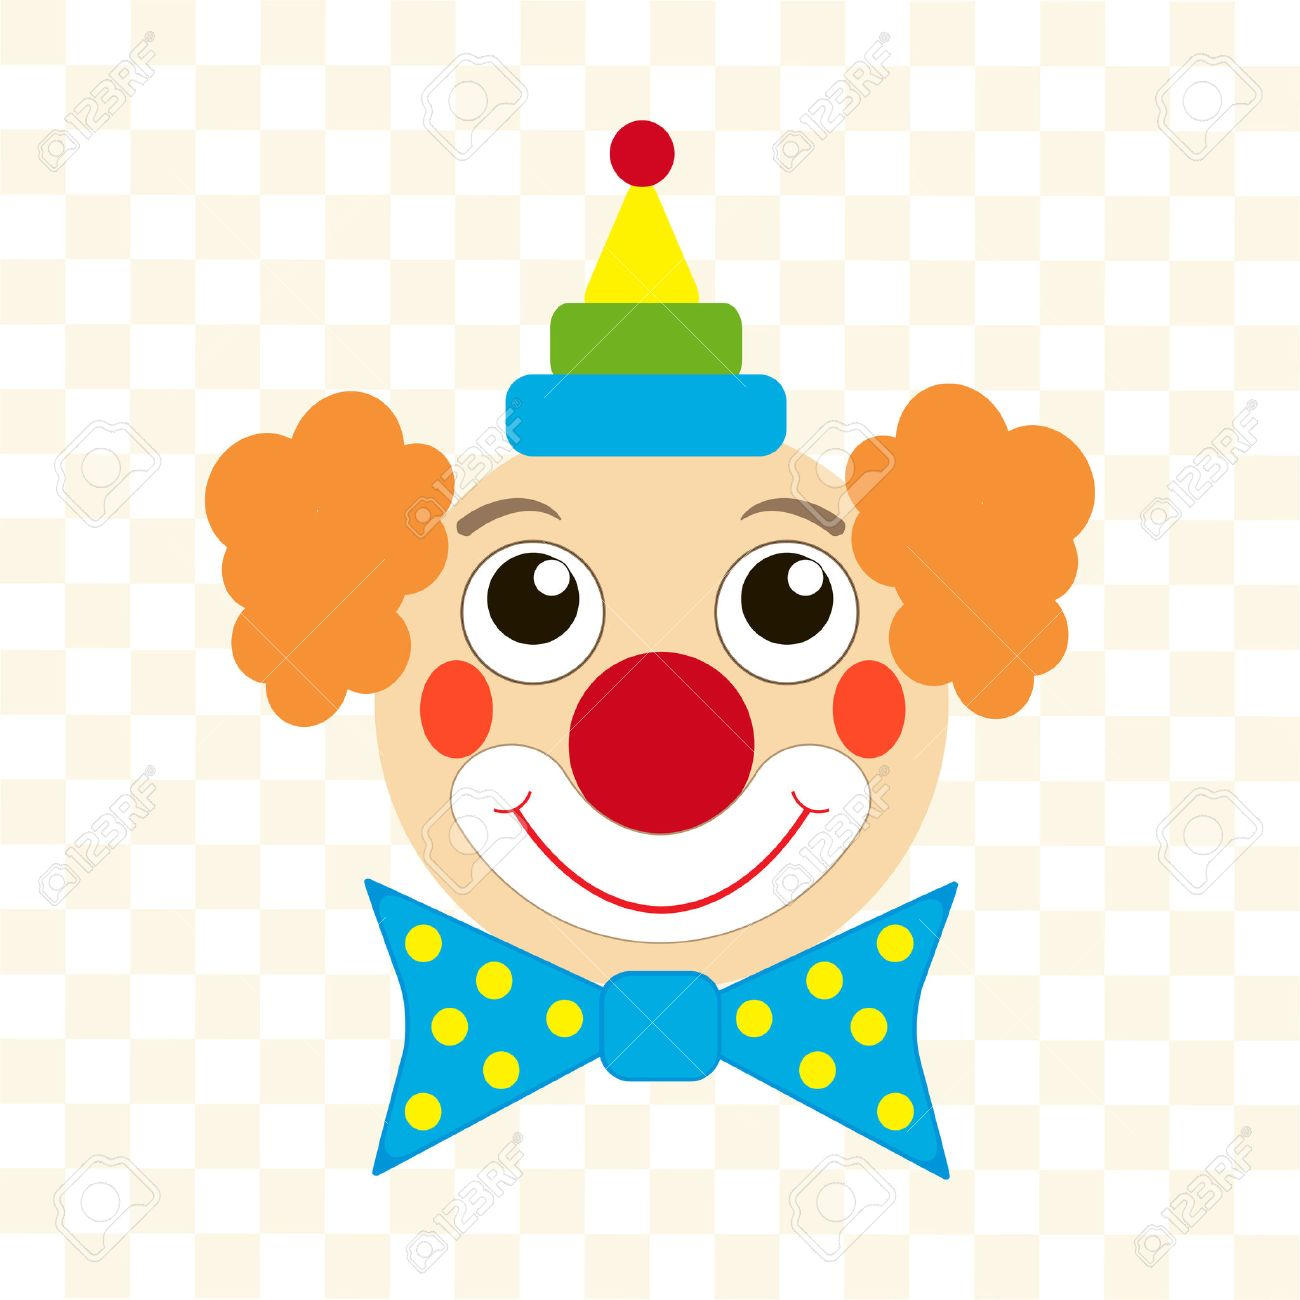 happy clown face royalty free cliparts vectors and stock rh 123rf com evil clown clipart free free clown clipart images